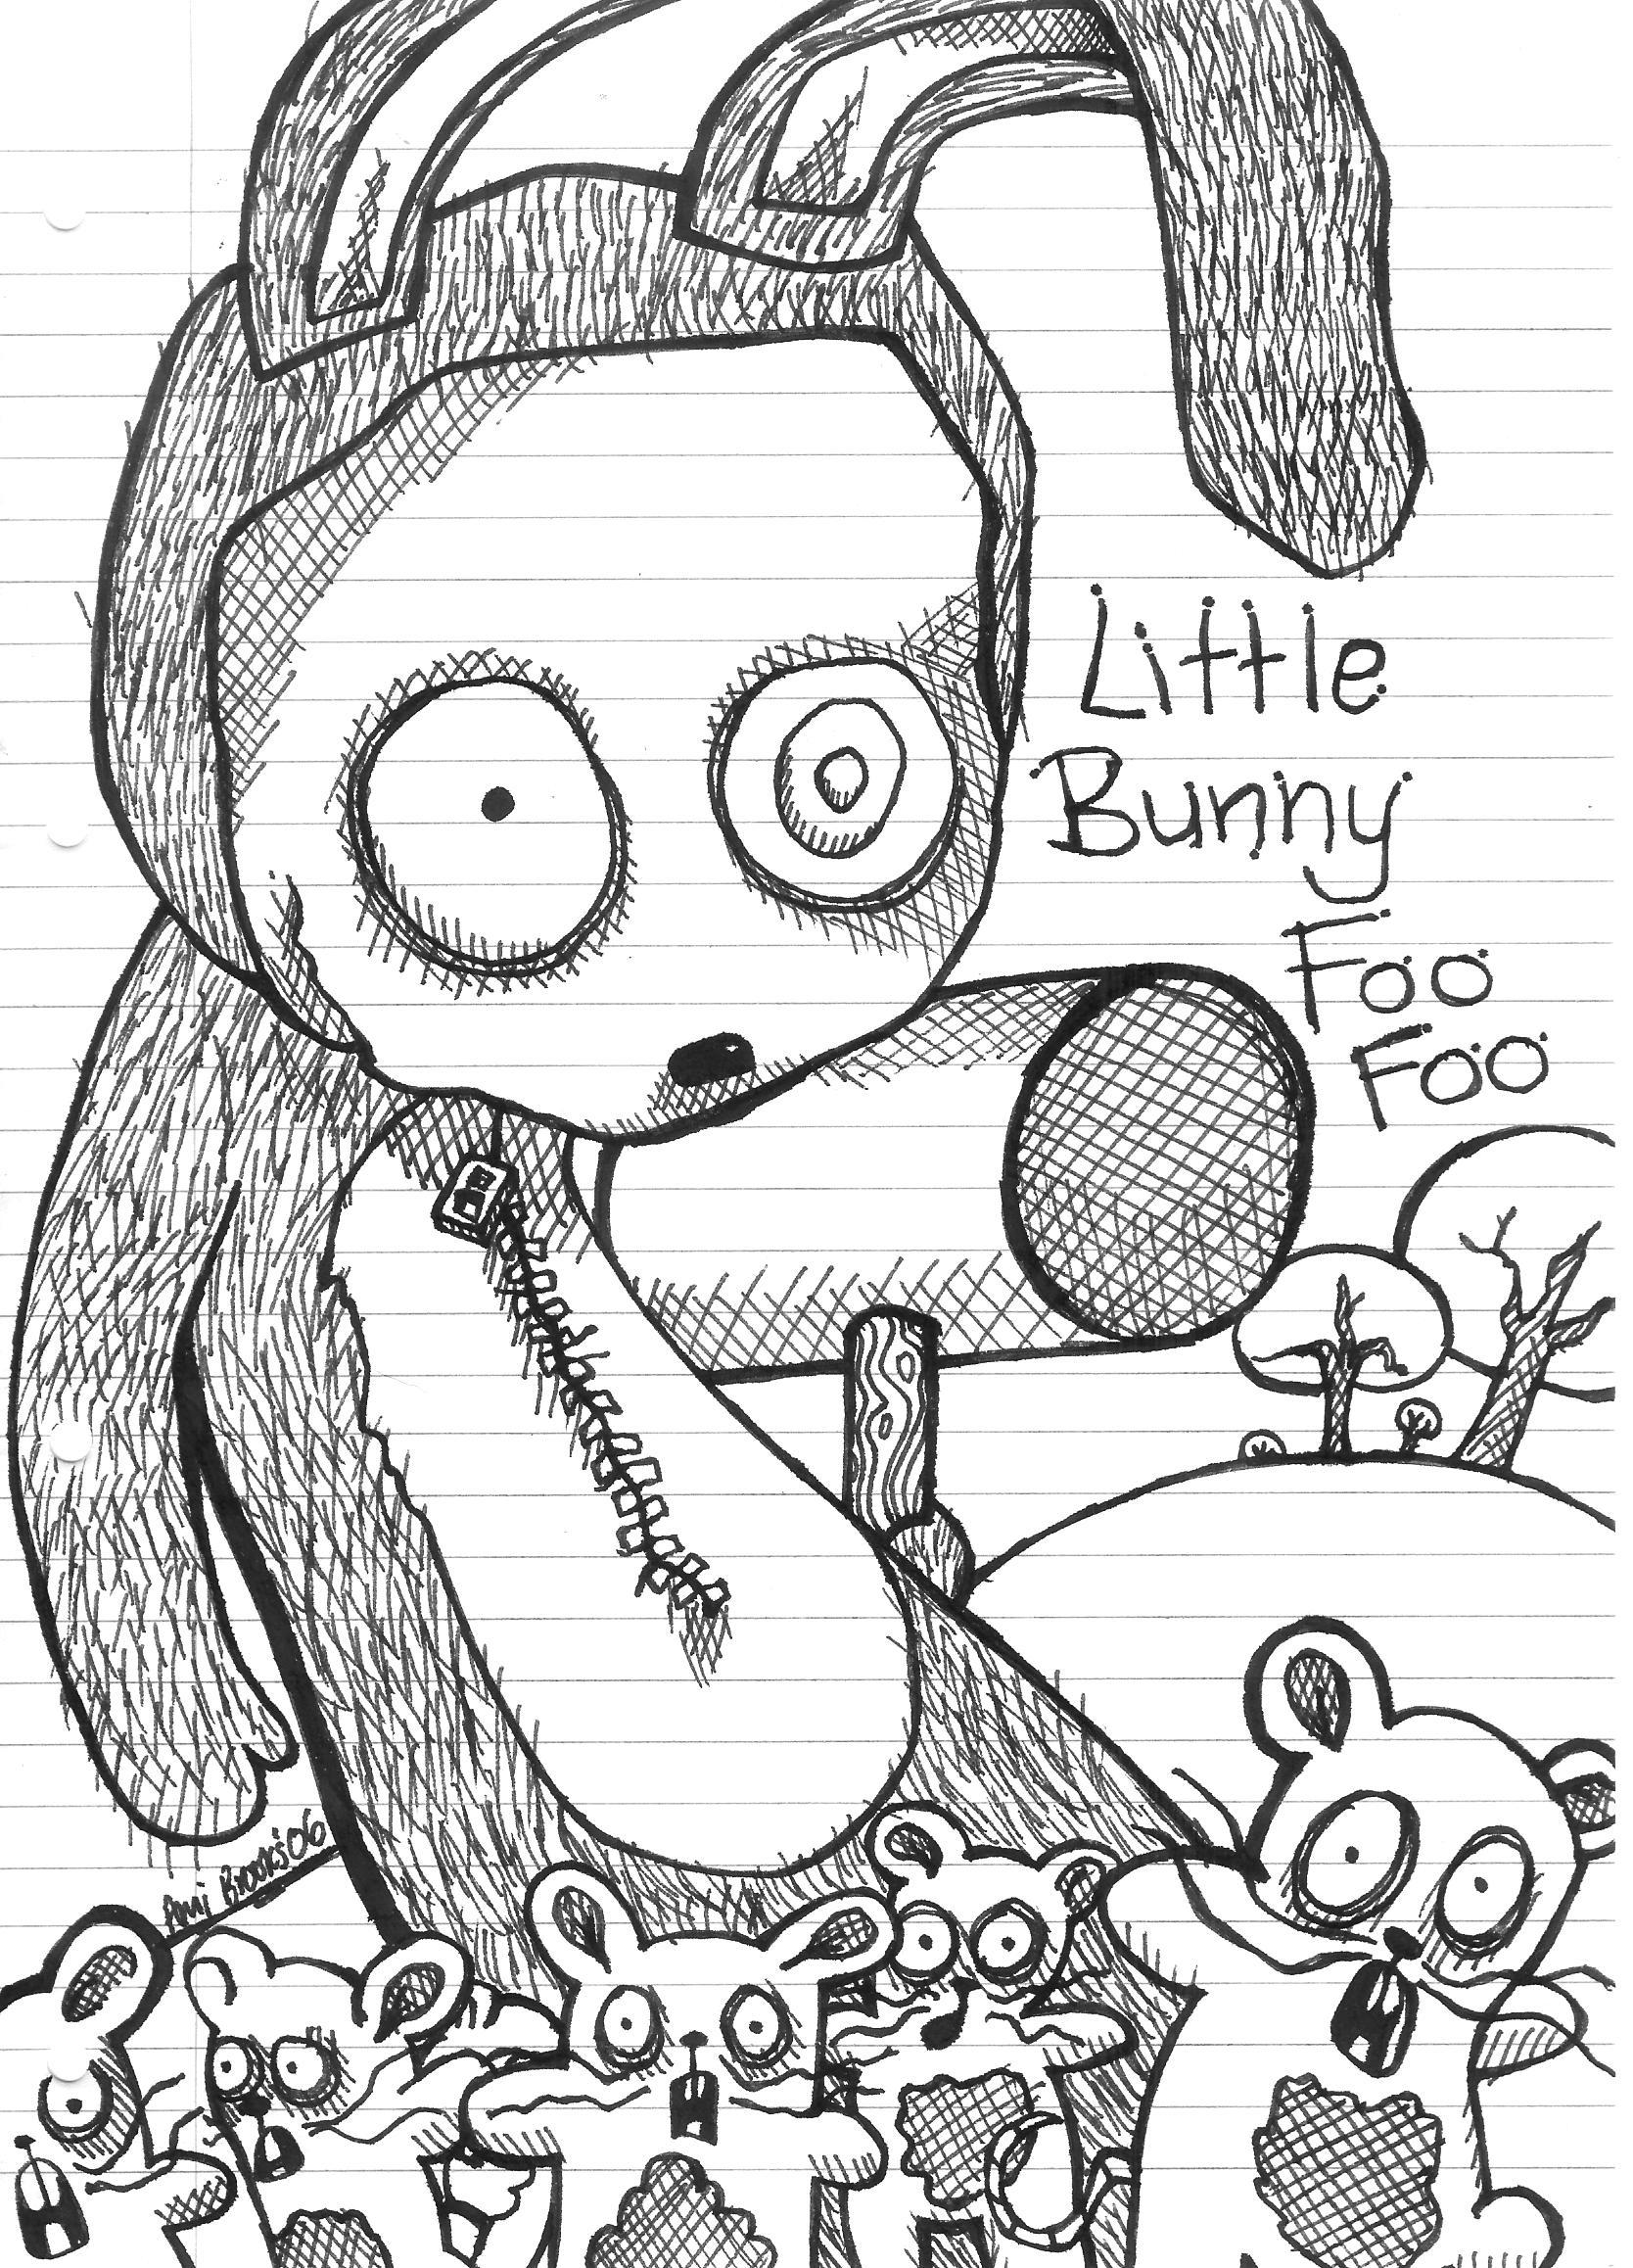 Little Bunny Foo Foo by A-B-normal on DeviantArt